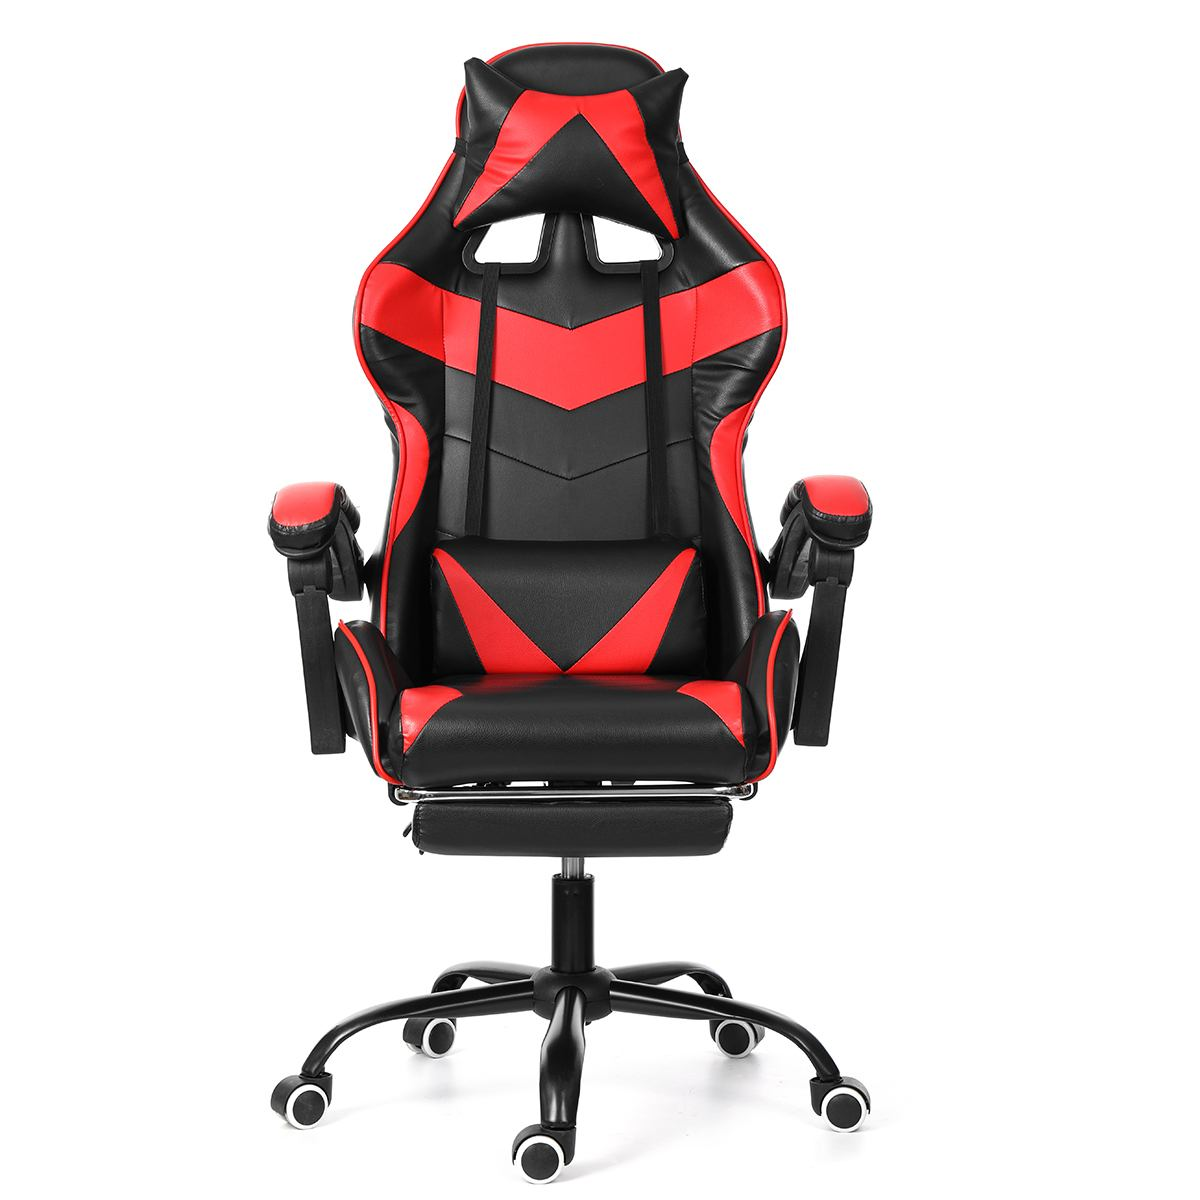 Computer Gaming Chair Internet Seat For Cafe Household Lounge Office Chair For Silla Gamer Adjustable Lifting Tilt Swivel Chair